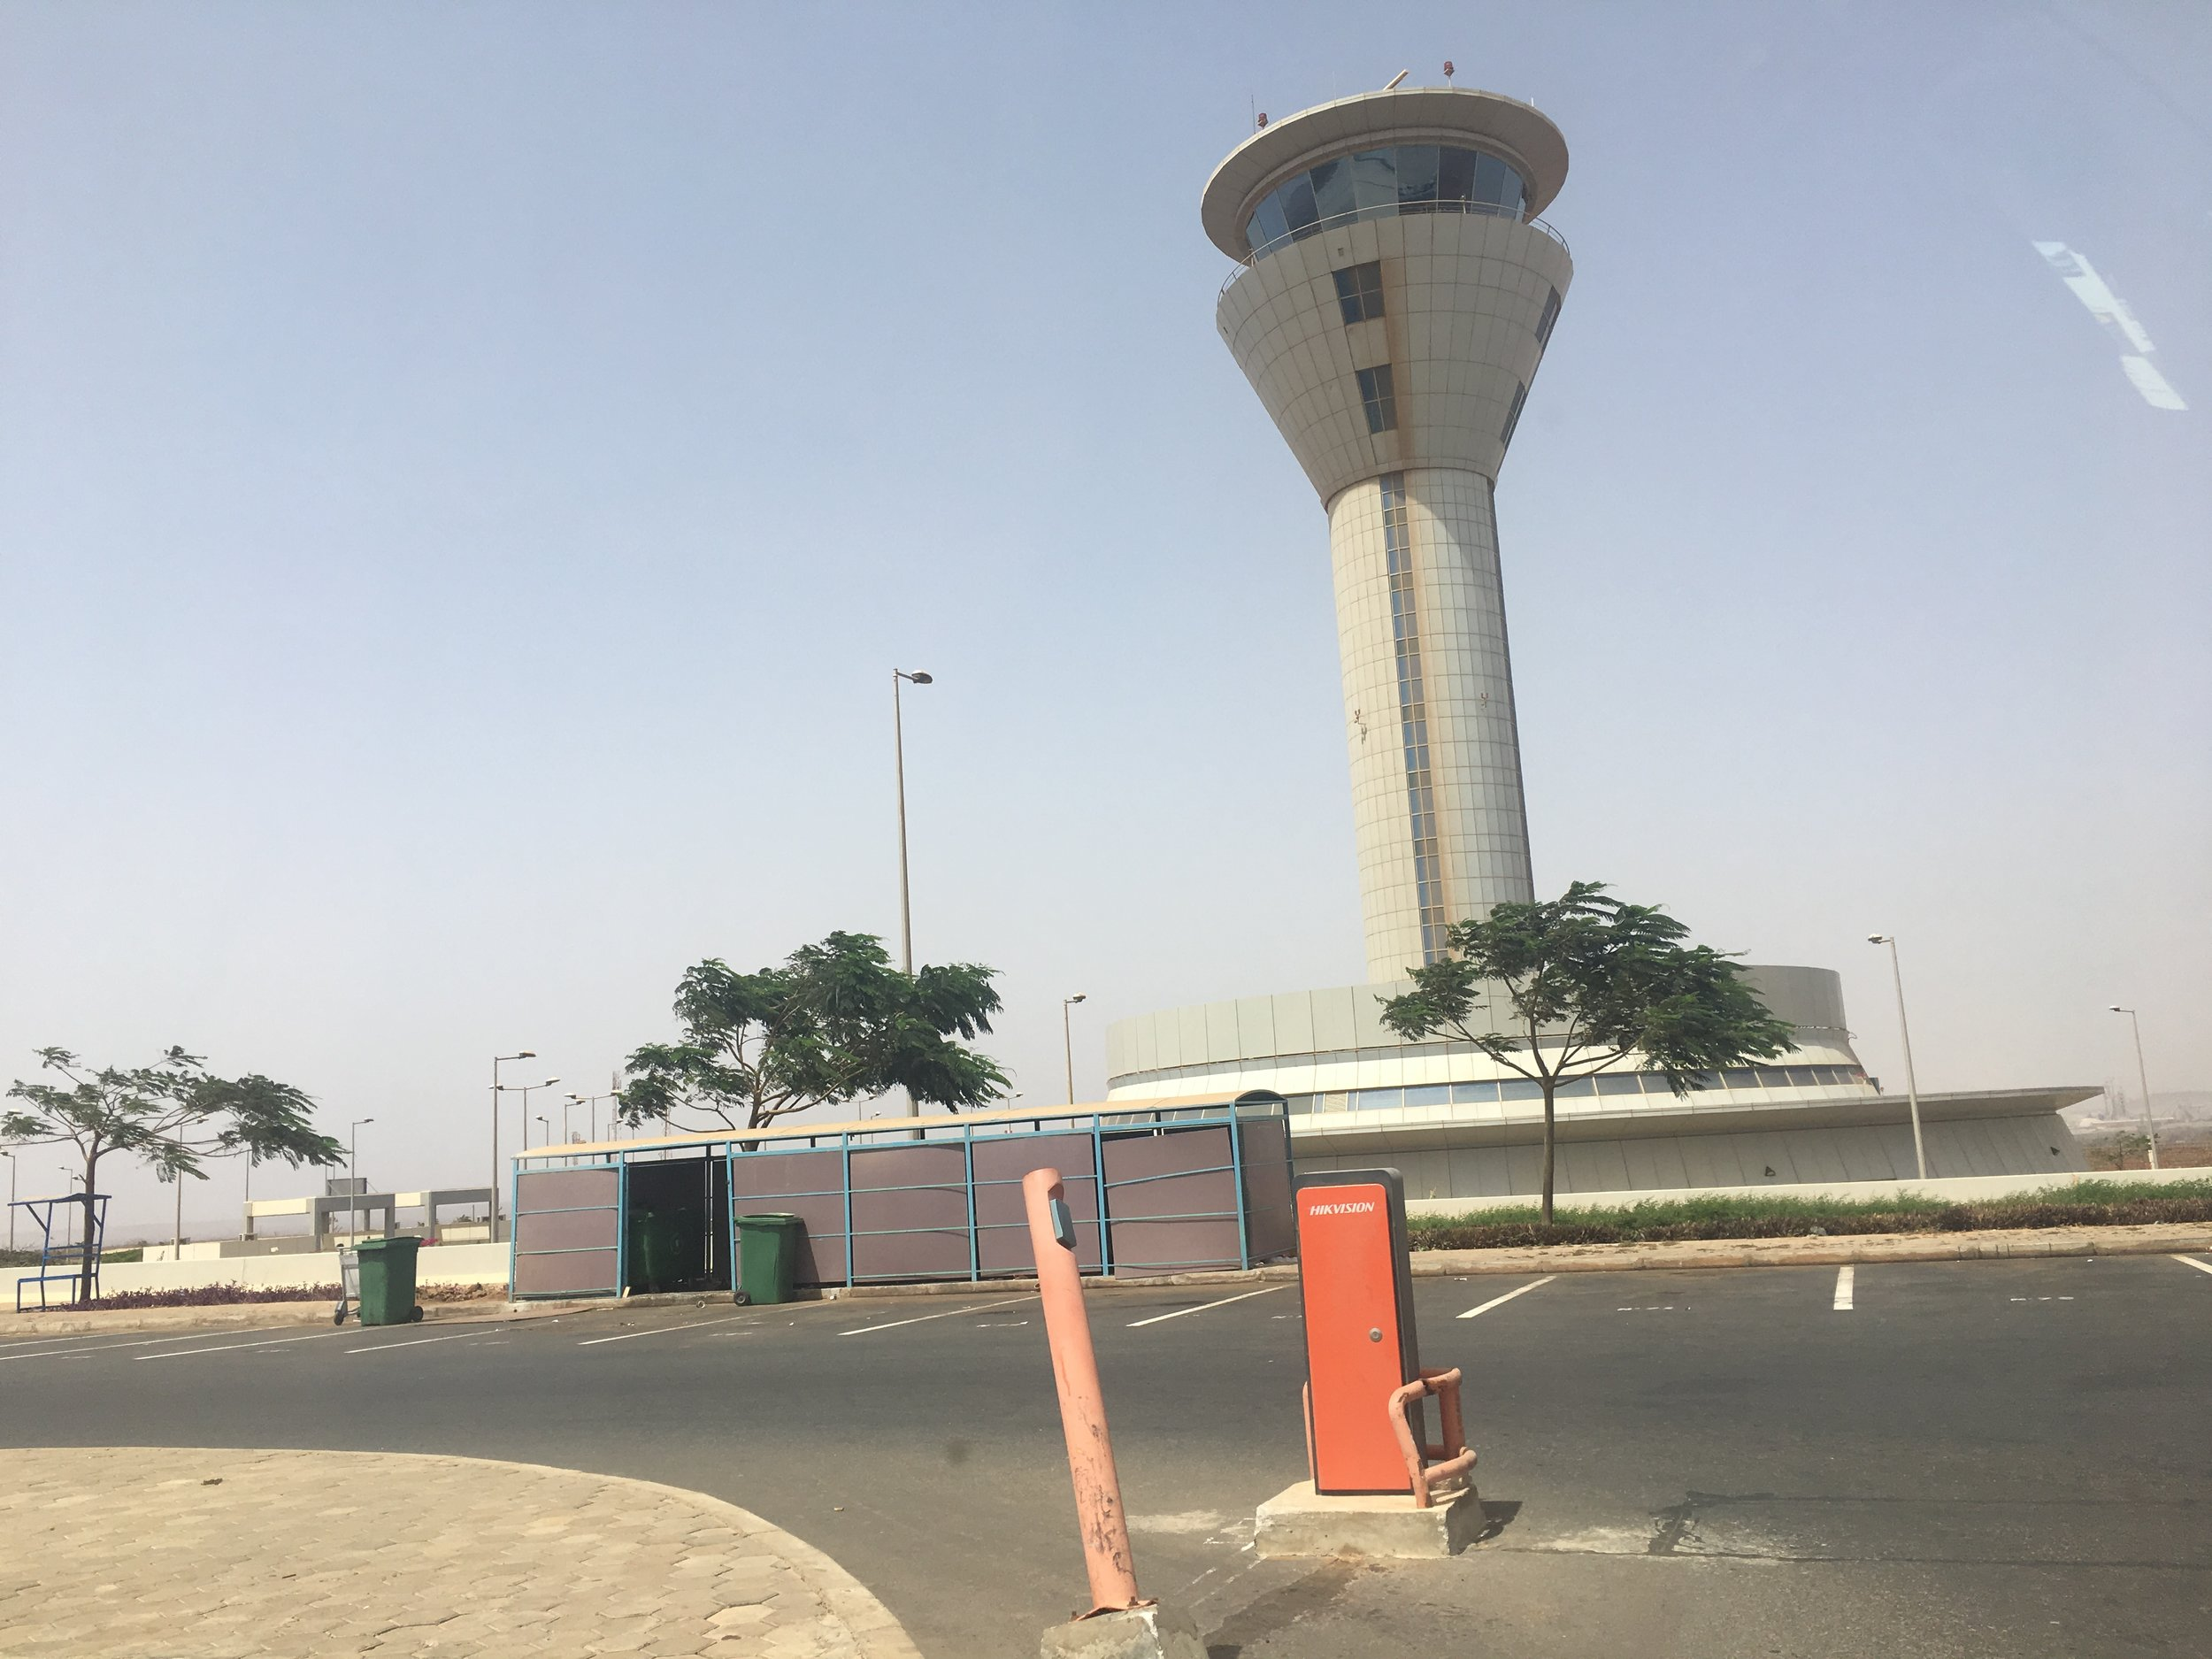 The new Dakar airport opened last year.